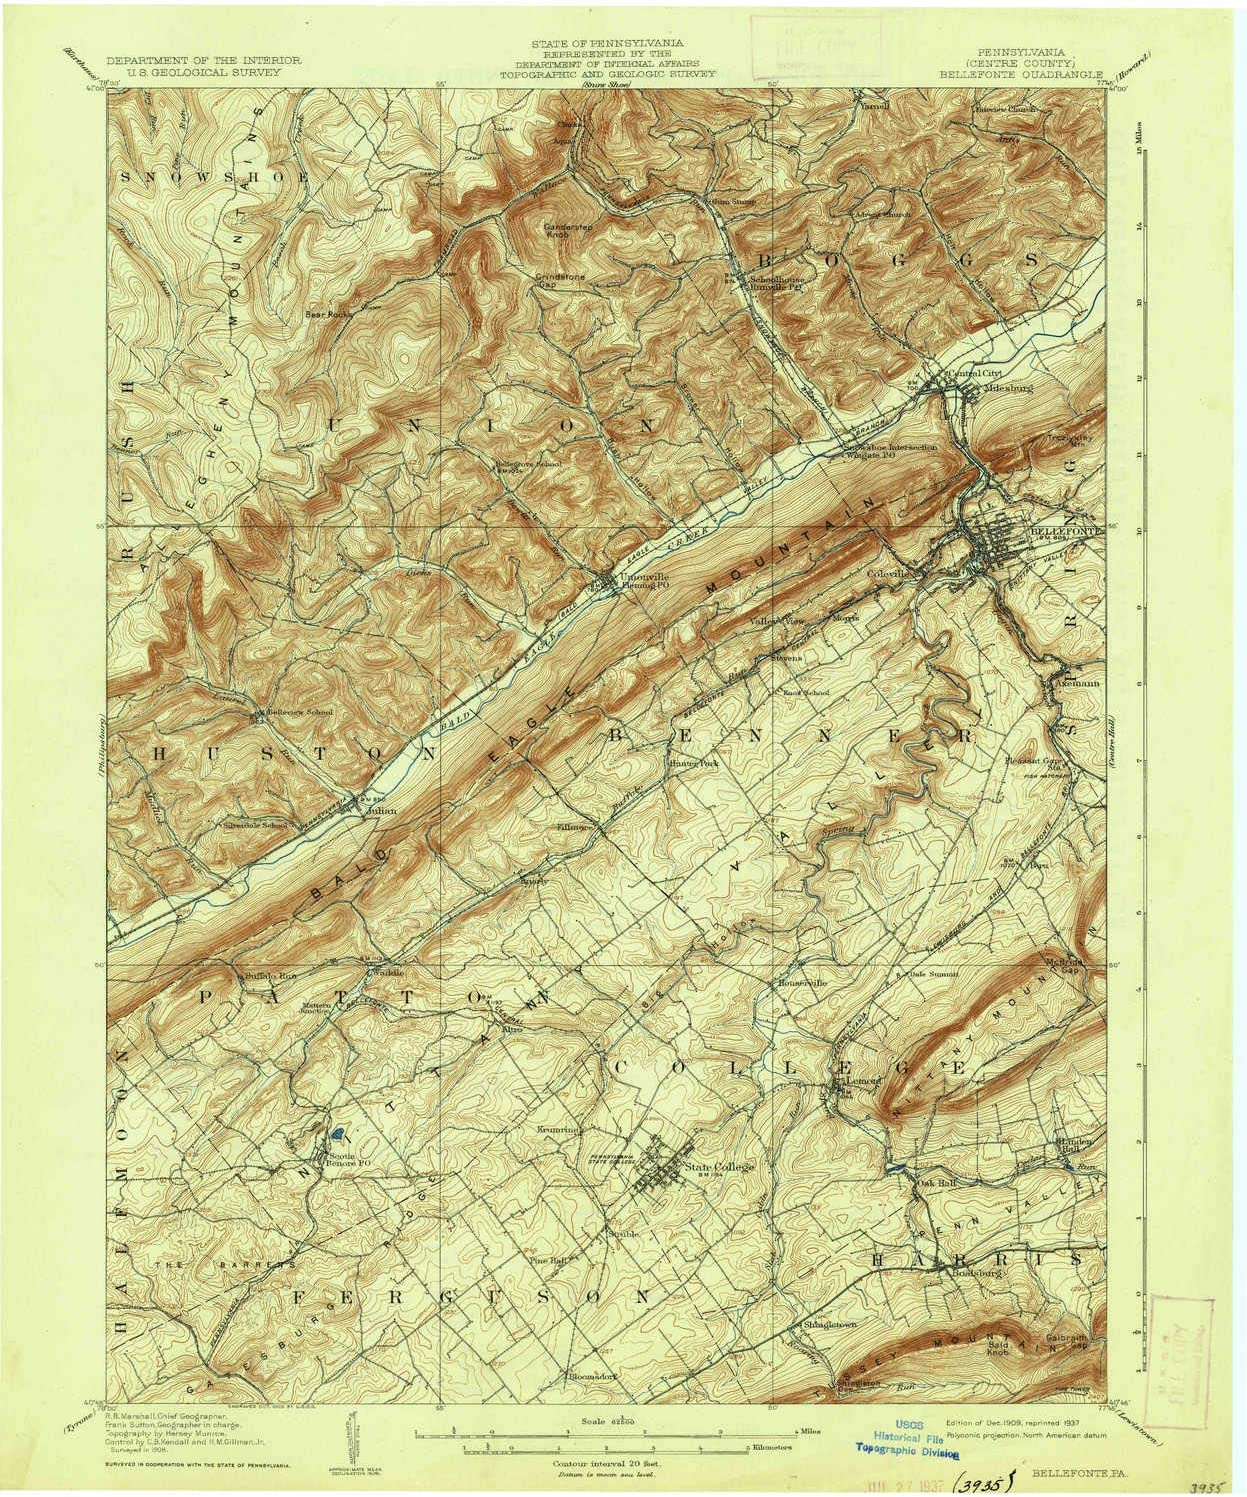 15 X 15 Minute 19.9 x 16.6 in Historical 1909 Updated 1937 Bellefonte PA topo map 1:62500 Scale